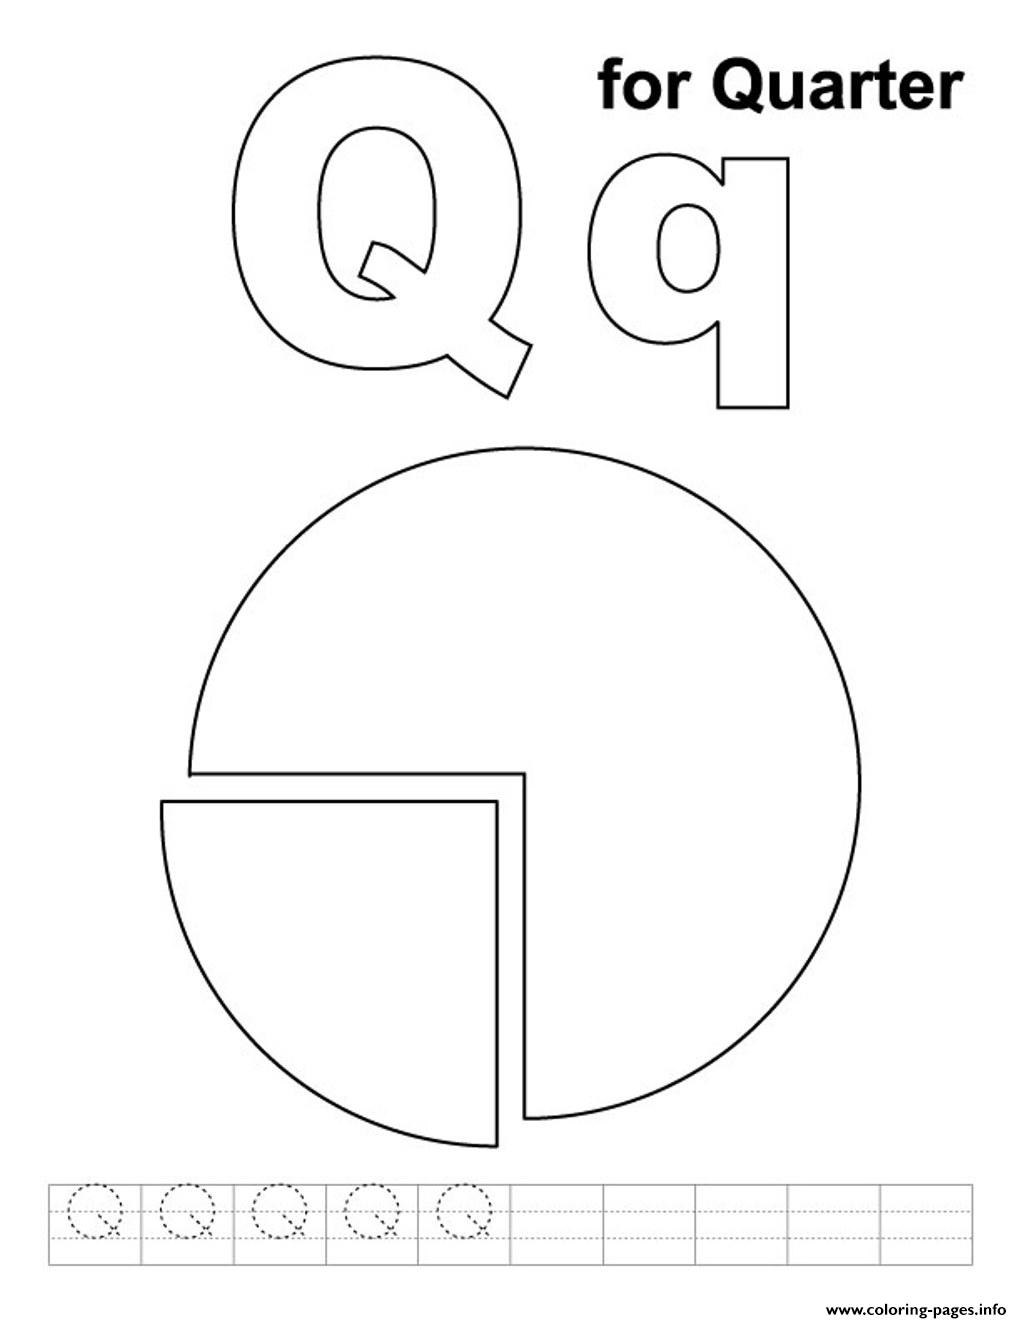 Q For Quarter Alphabet S0eff Coloring Pages Printable